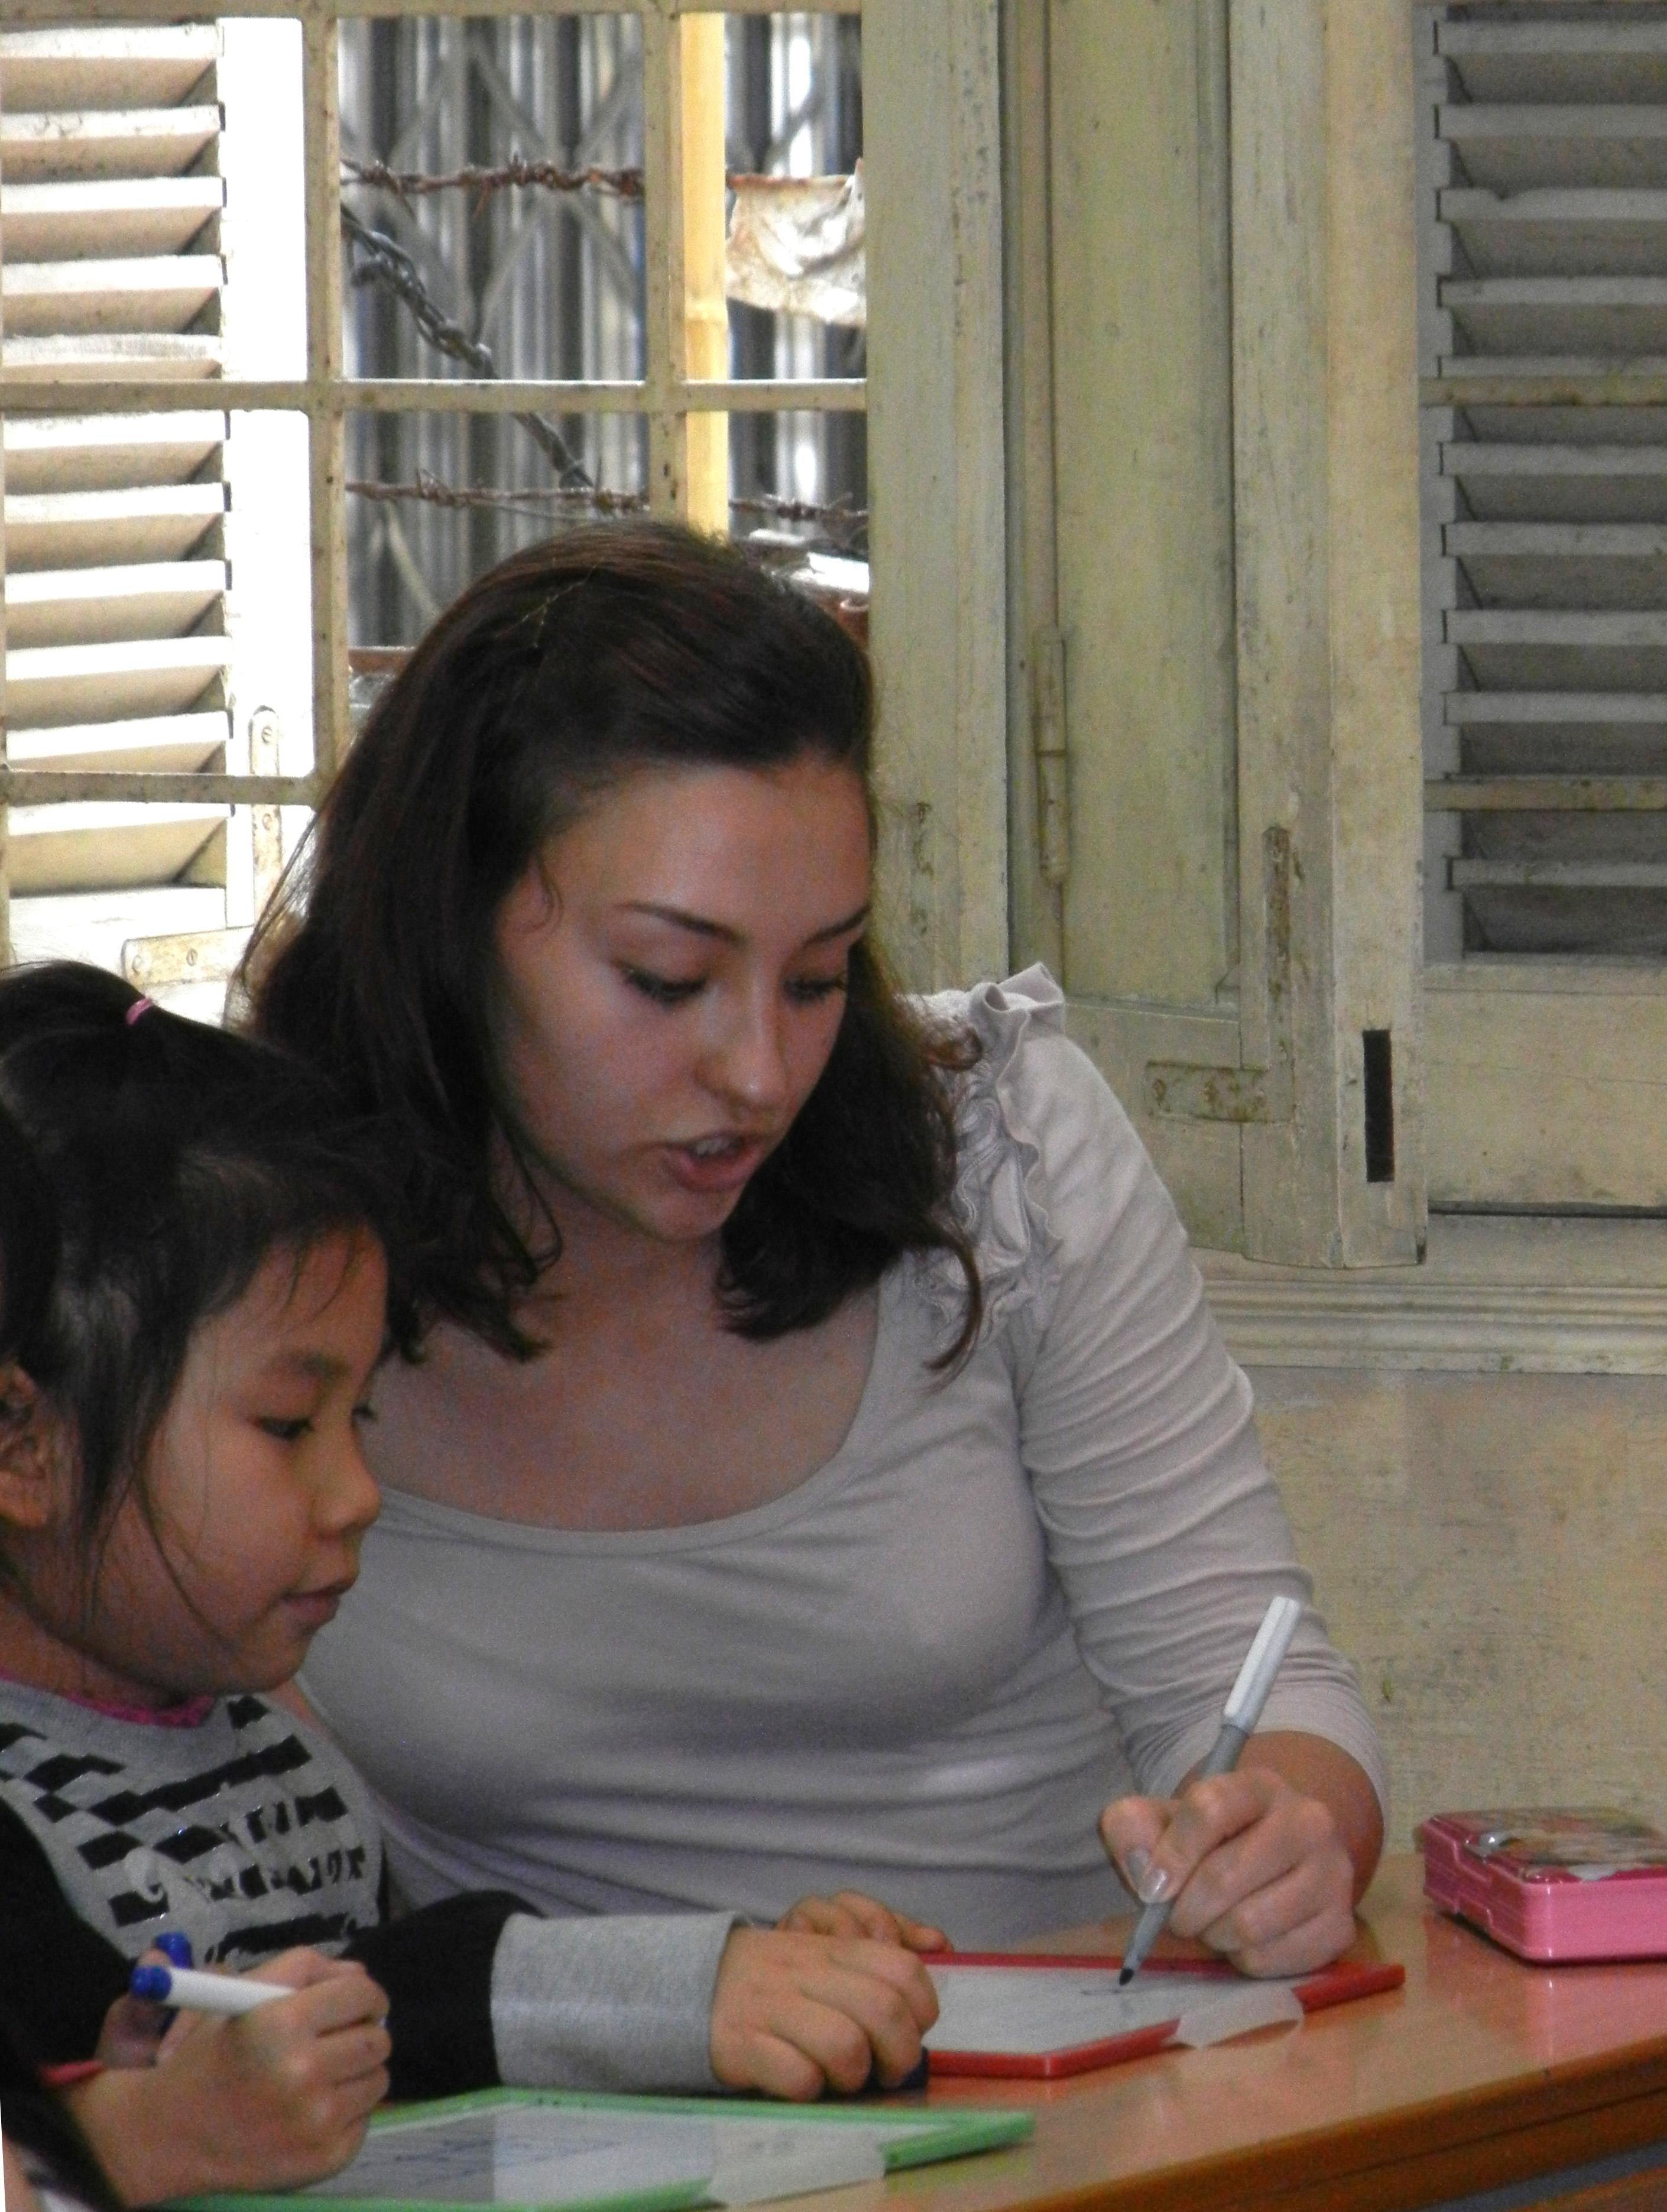 An intern from Projects Abroad can be seen teaching a child how to read and write whilst on her speech therapy internship in Vietnam.